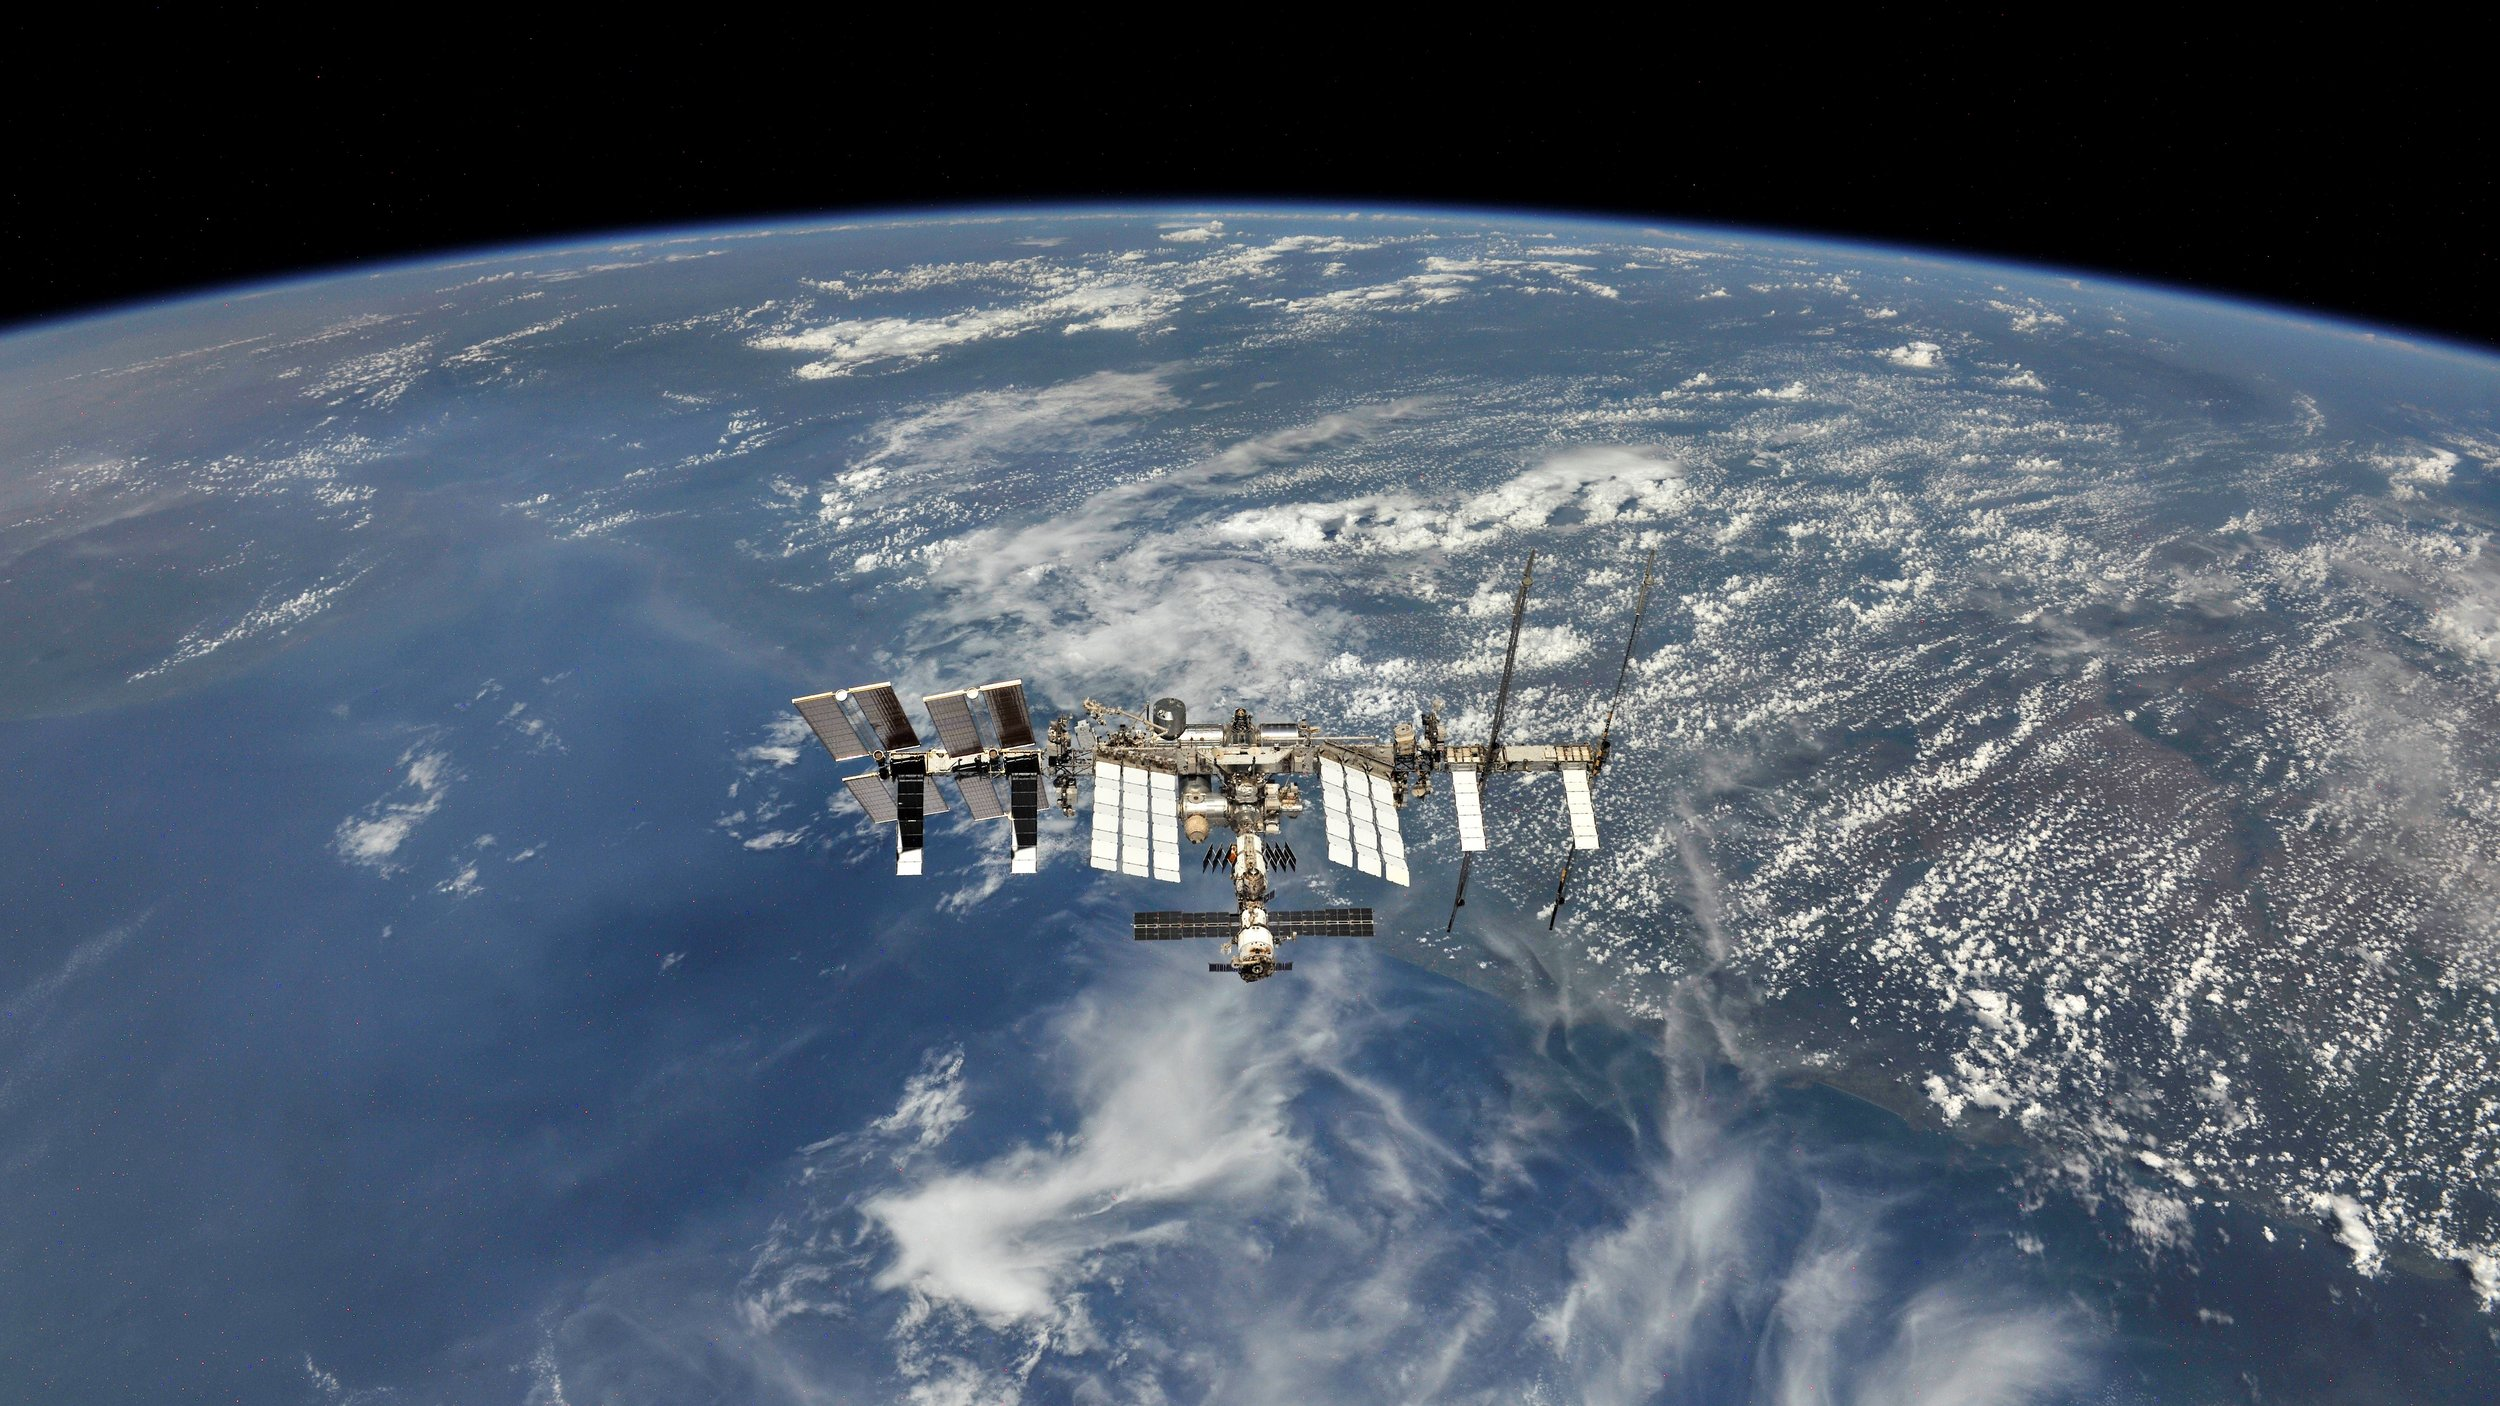 The International Space Station as seen in October 2018. Credit: NASA